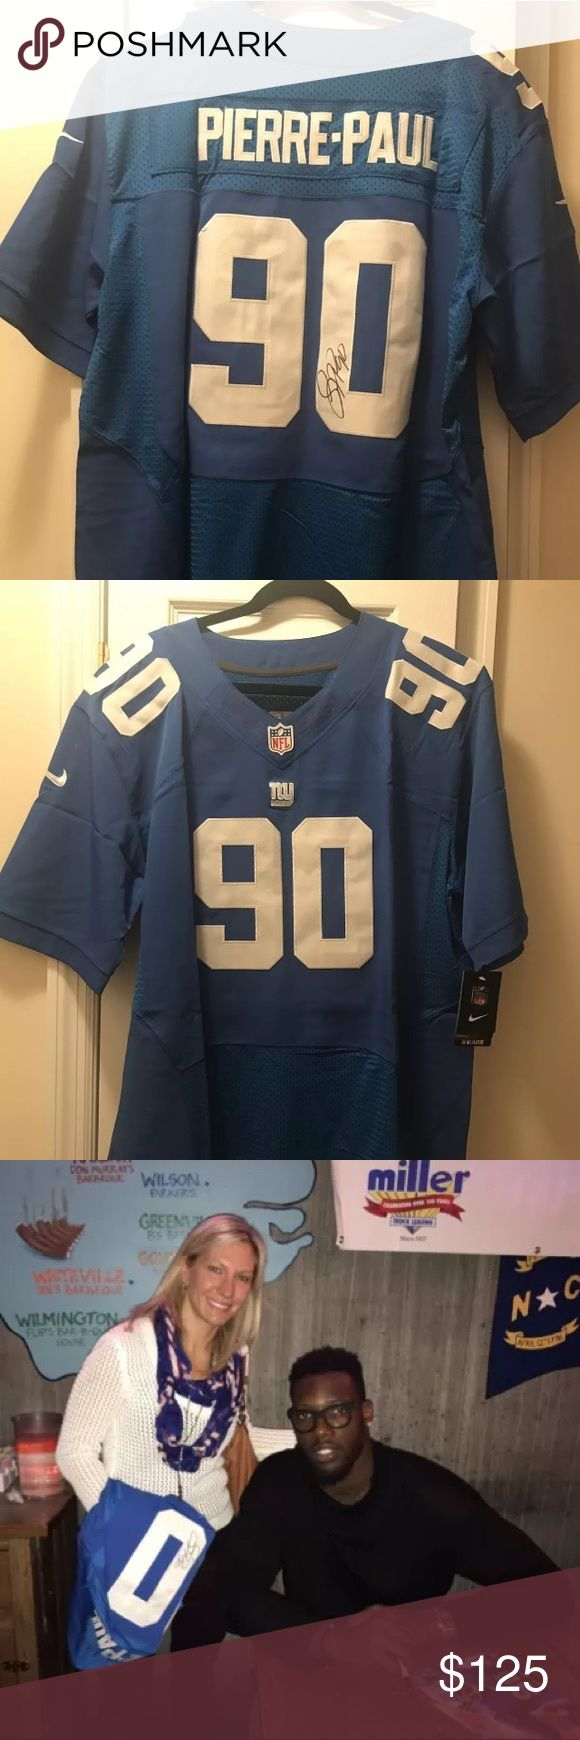 Jason Pierre-Paul New York Giants signed jersey XL This is an excellent quality, never worn, new with tags signed jersey by Jason Pierre-Paul from the New York Giants (JPP). He signed this in person. Nike brand, size 48 (XL). Price for signed jersey online runs for approx $150-$200. Nike Other